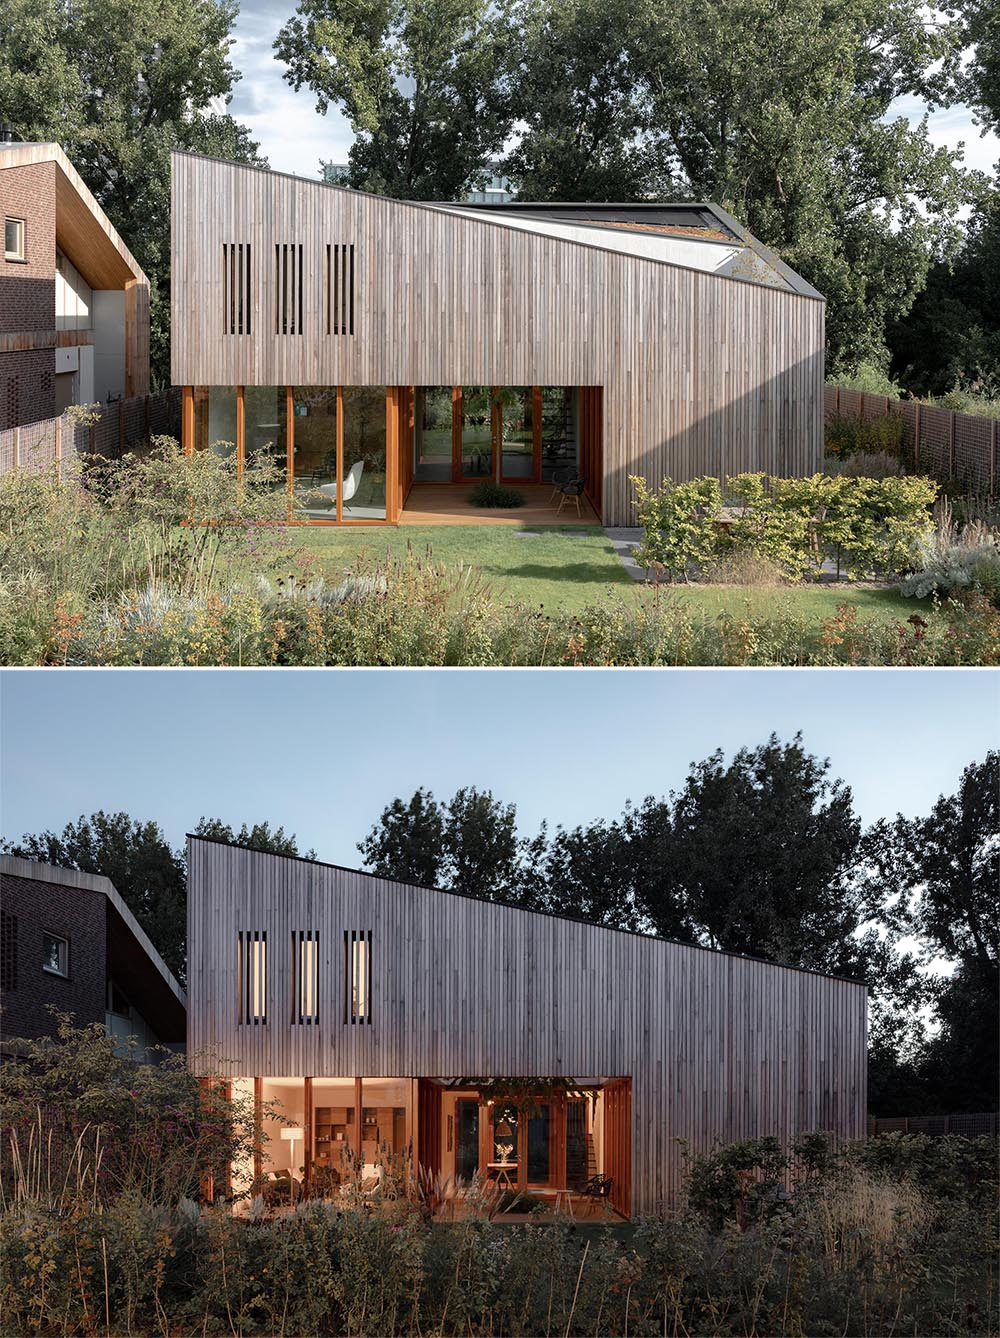 A modern house with wood siding and an angled roof that includes a green roof.